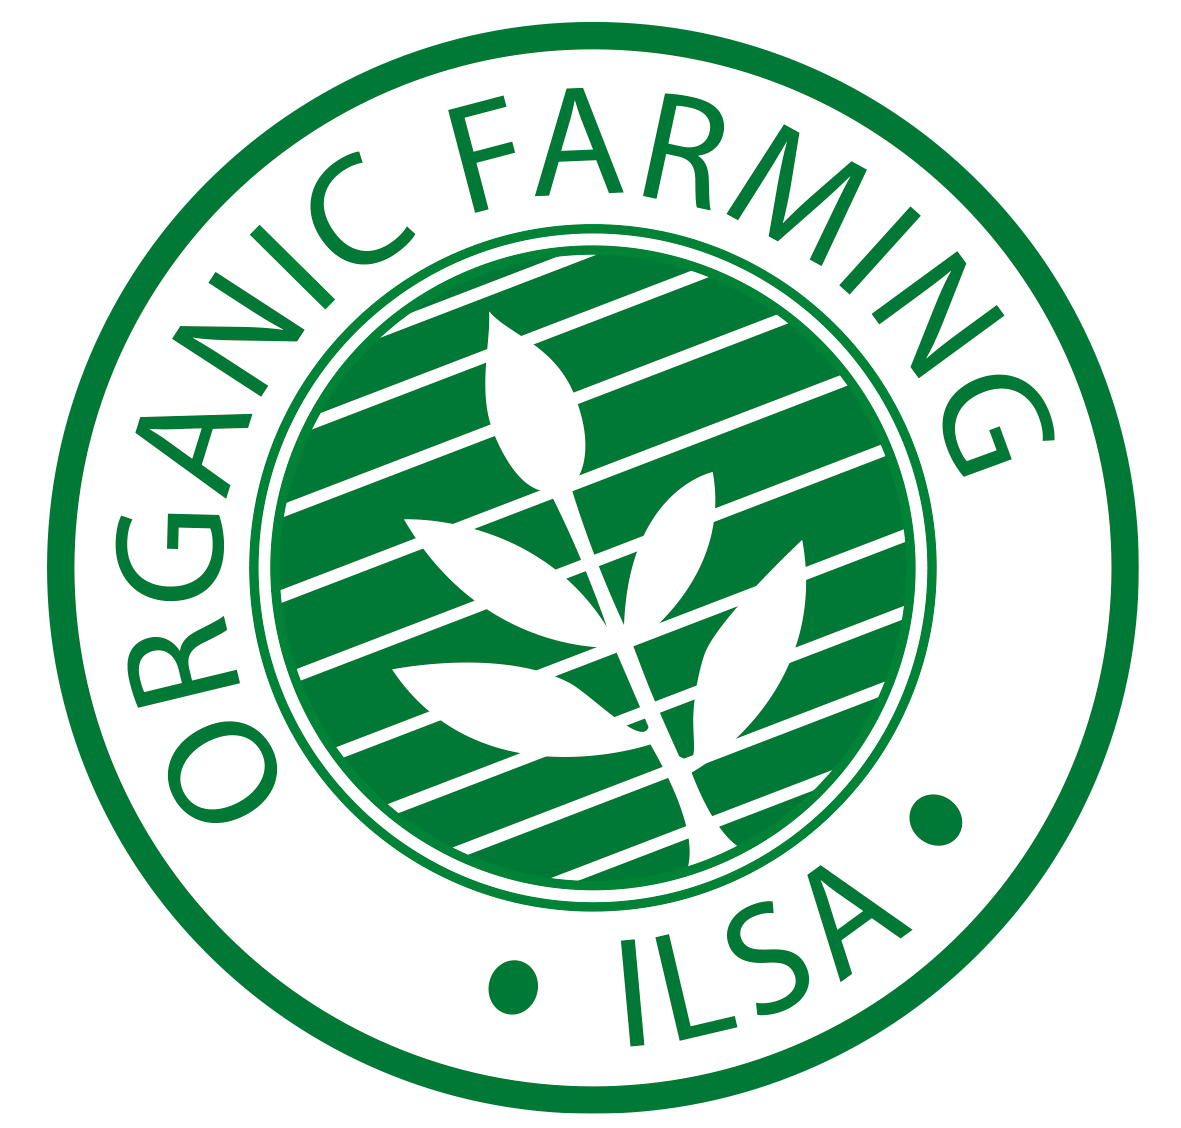 Allowed in organic farming